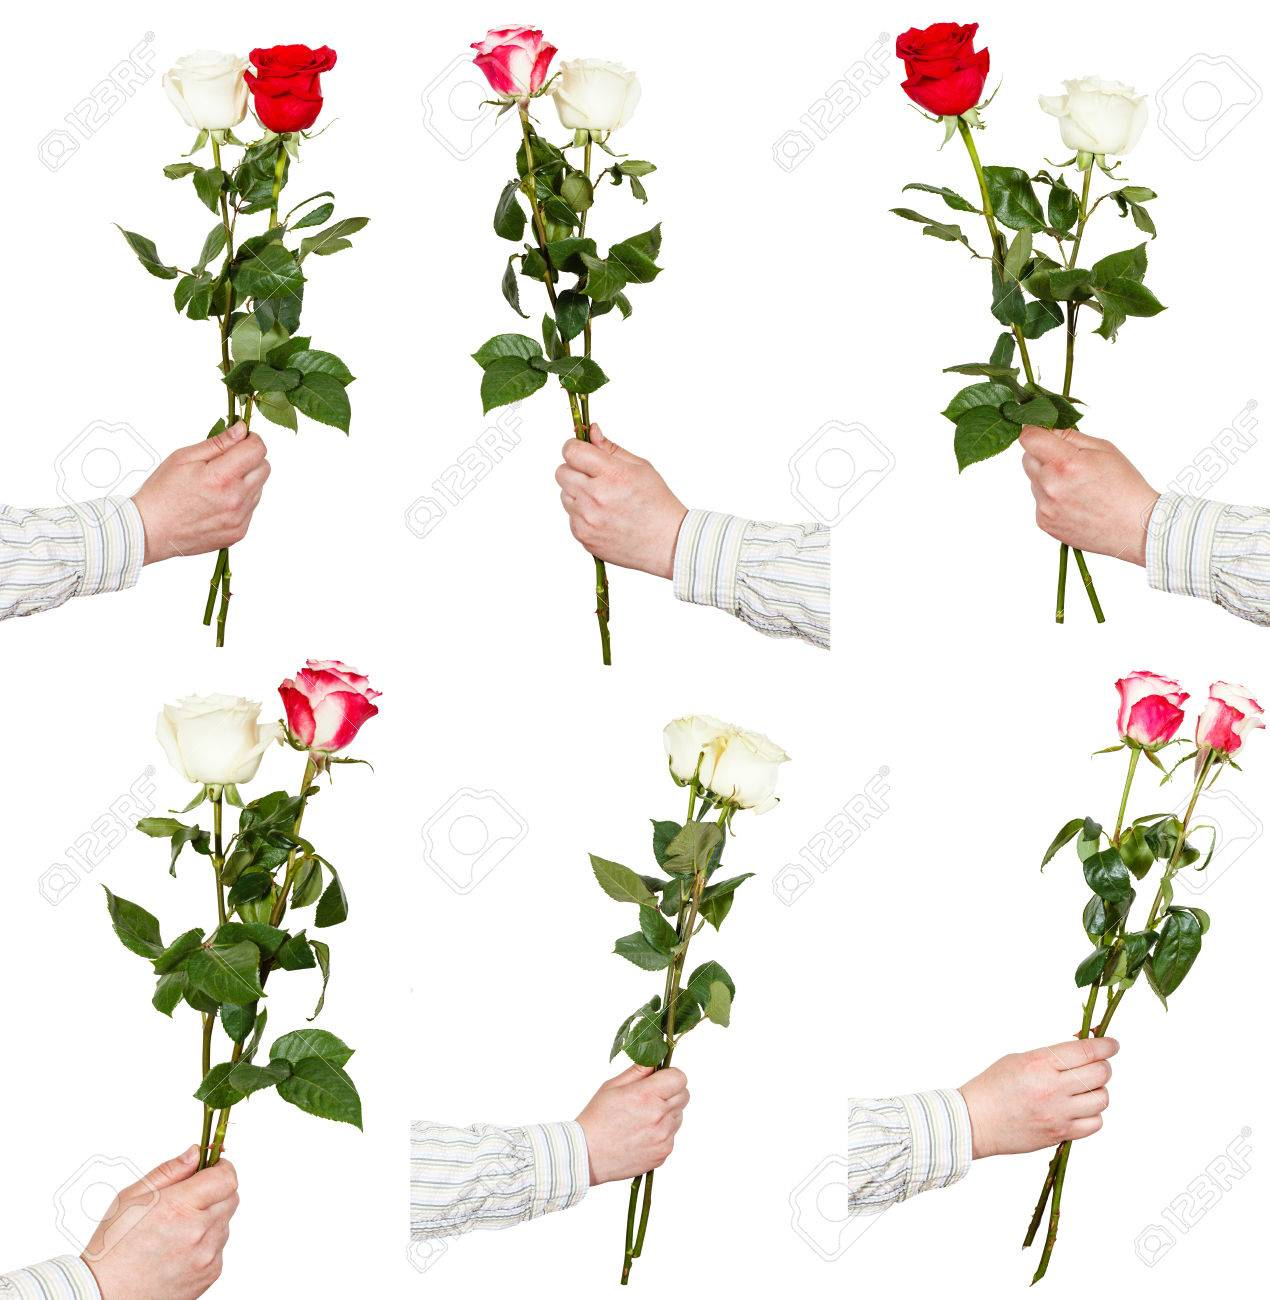 Set of two rose flower bouquets in hand isolated on white background set of two rose flower bouquets in hand isolated on white background stock photo 40587620 izmirmasajfo